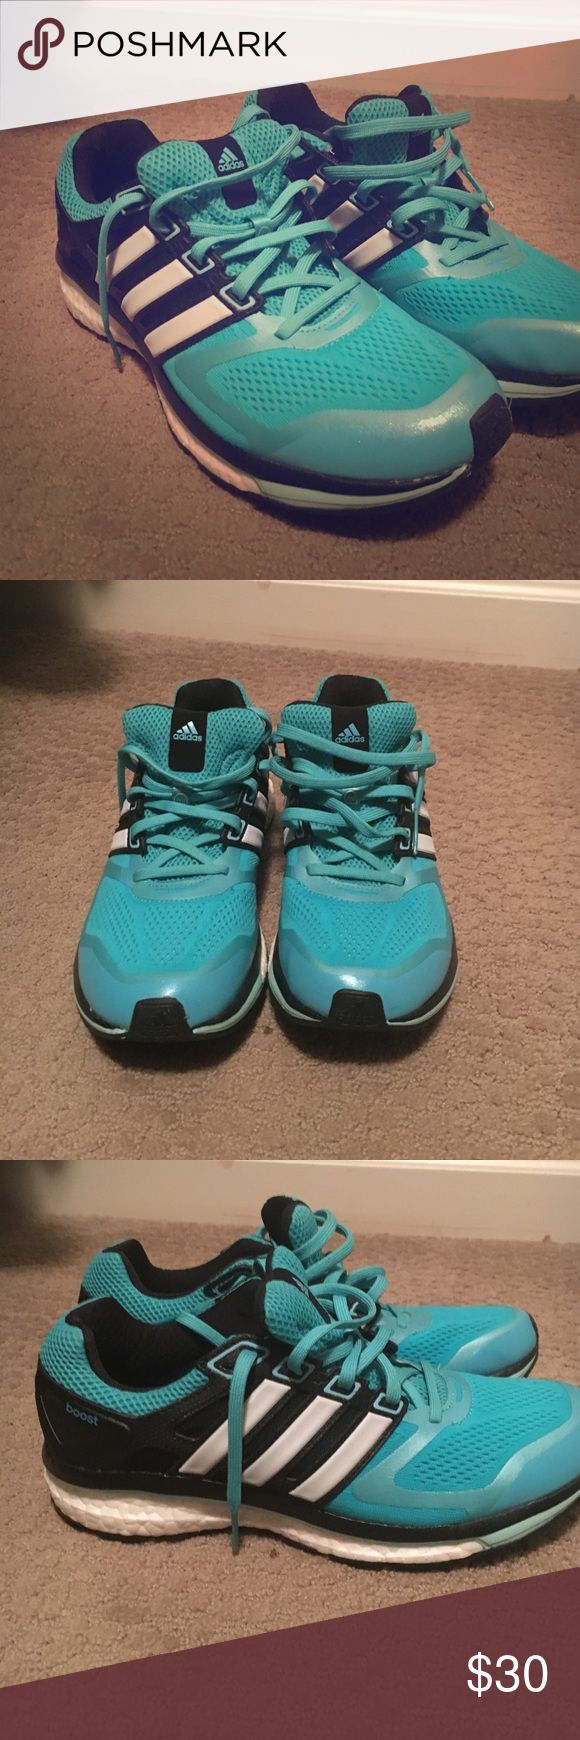 Adidas glide boost Barely worn- still new Adidas Shoes Athletic Shoes